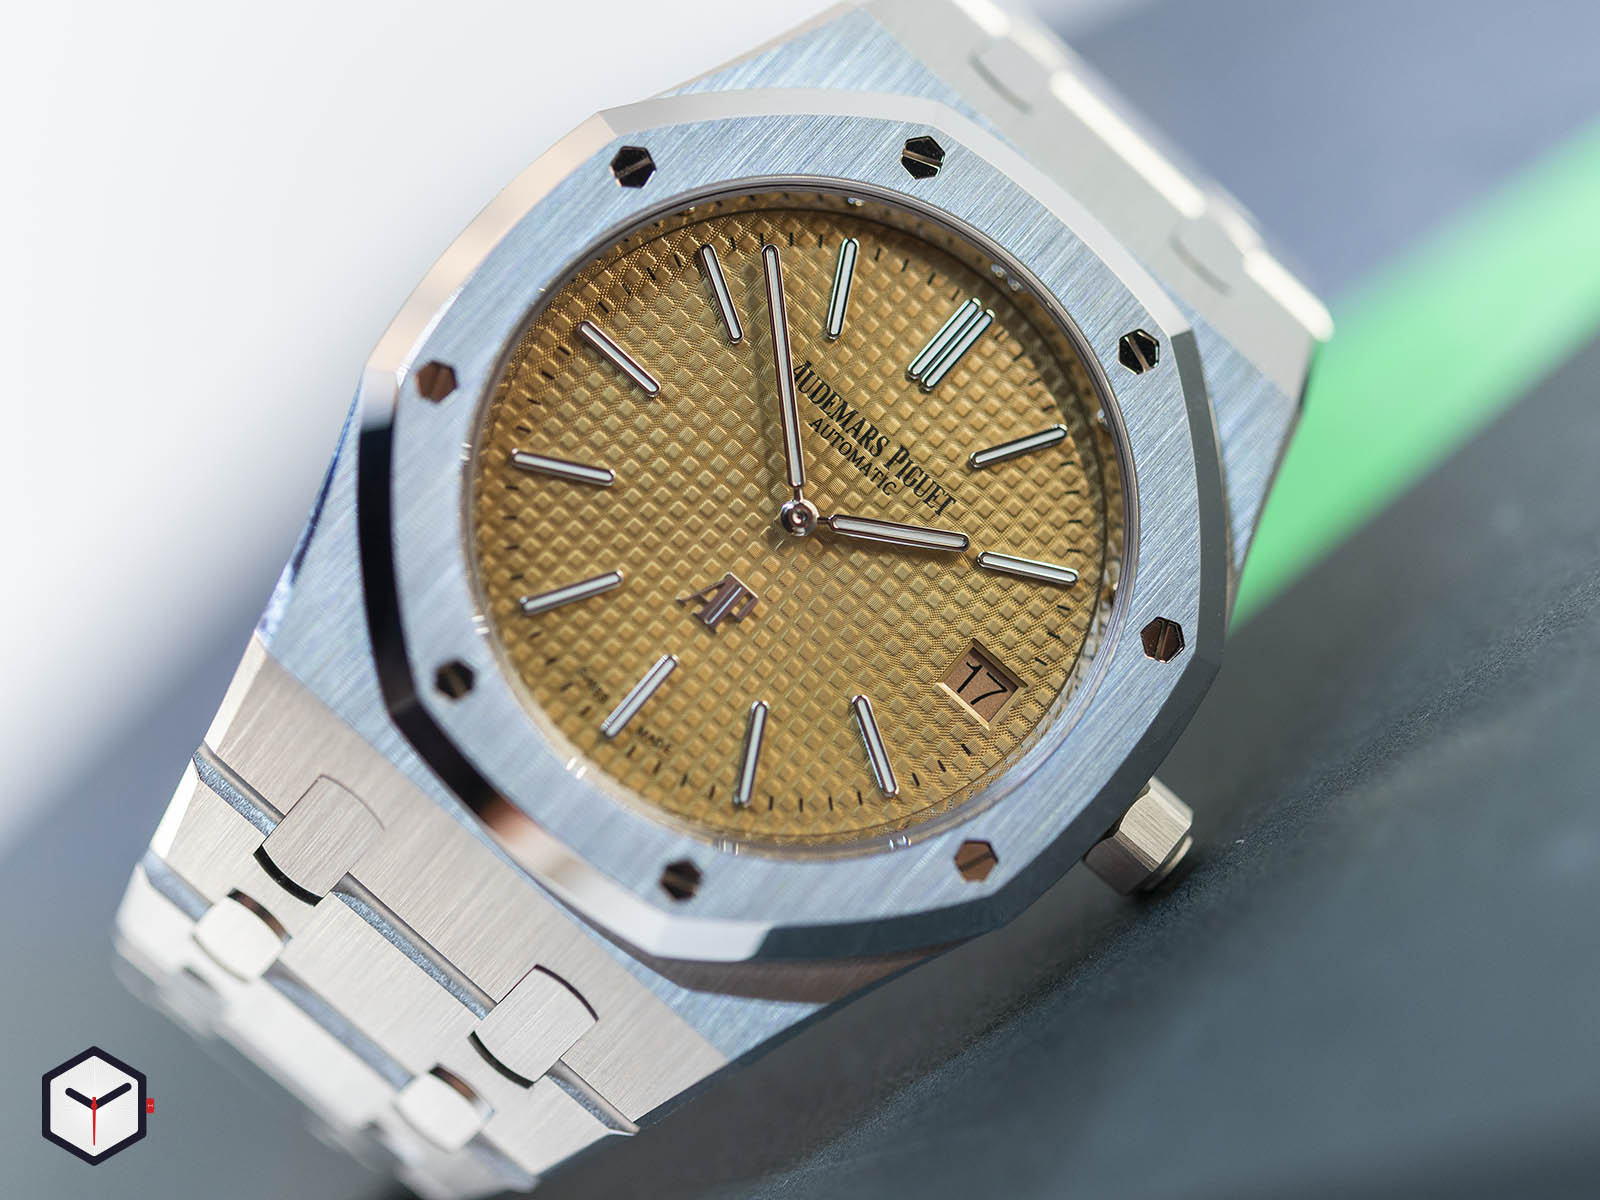 15202bc-oo-1240bc-01-audemars-piguet-royal-oak-jumbo-extra-thin-2019-2.jpg